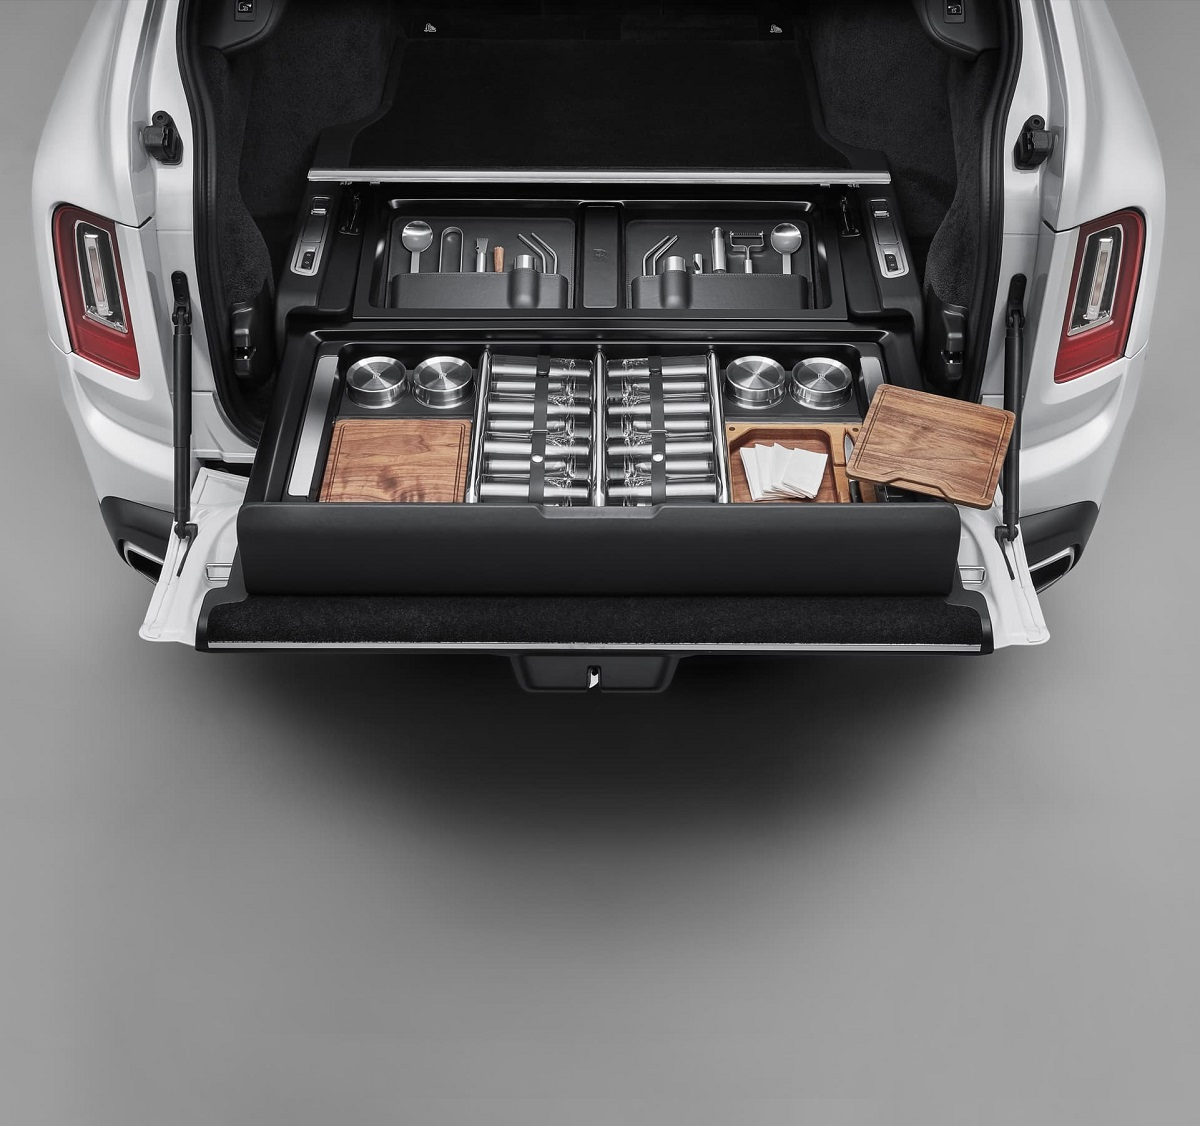 Rolls-Royce Motor Cars Cullinan Recreation Module